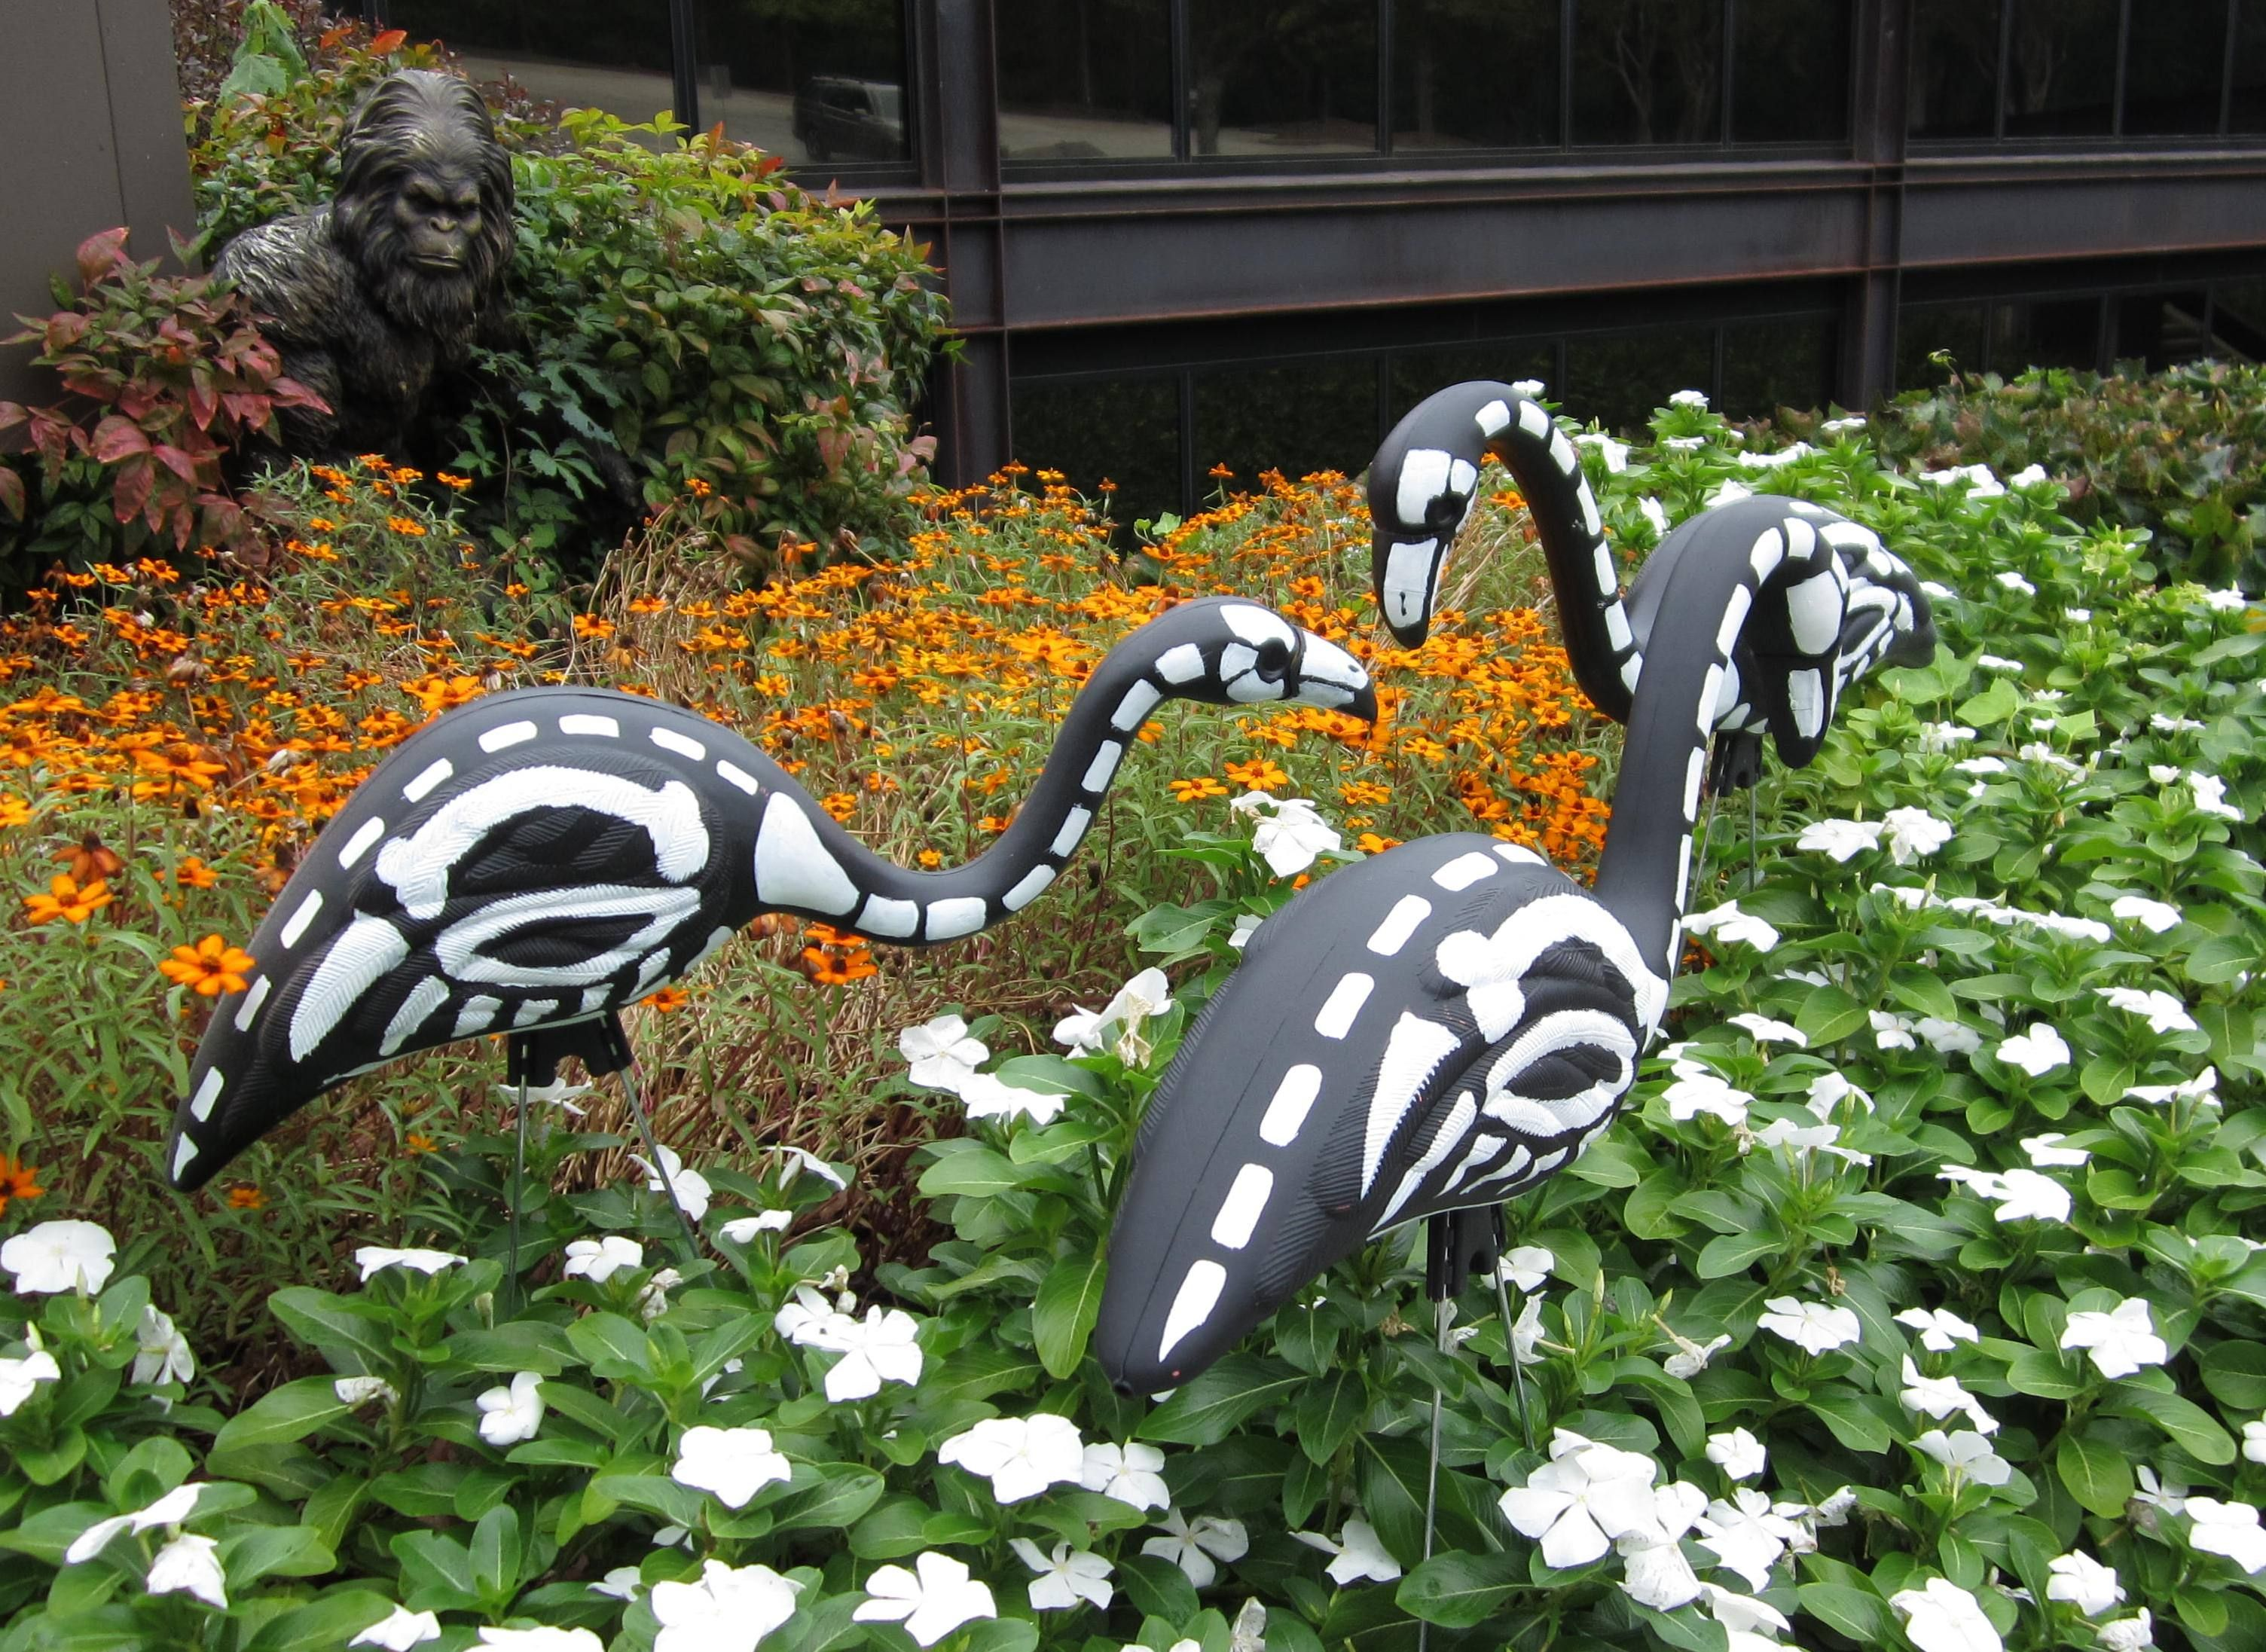 Skeleton Flamingos!   communityhomedepot/t5/Halloween - Halloween Yard Decorations Ideas